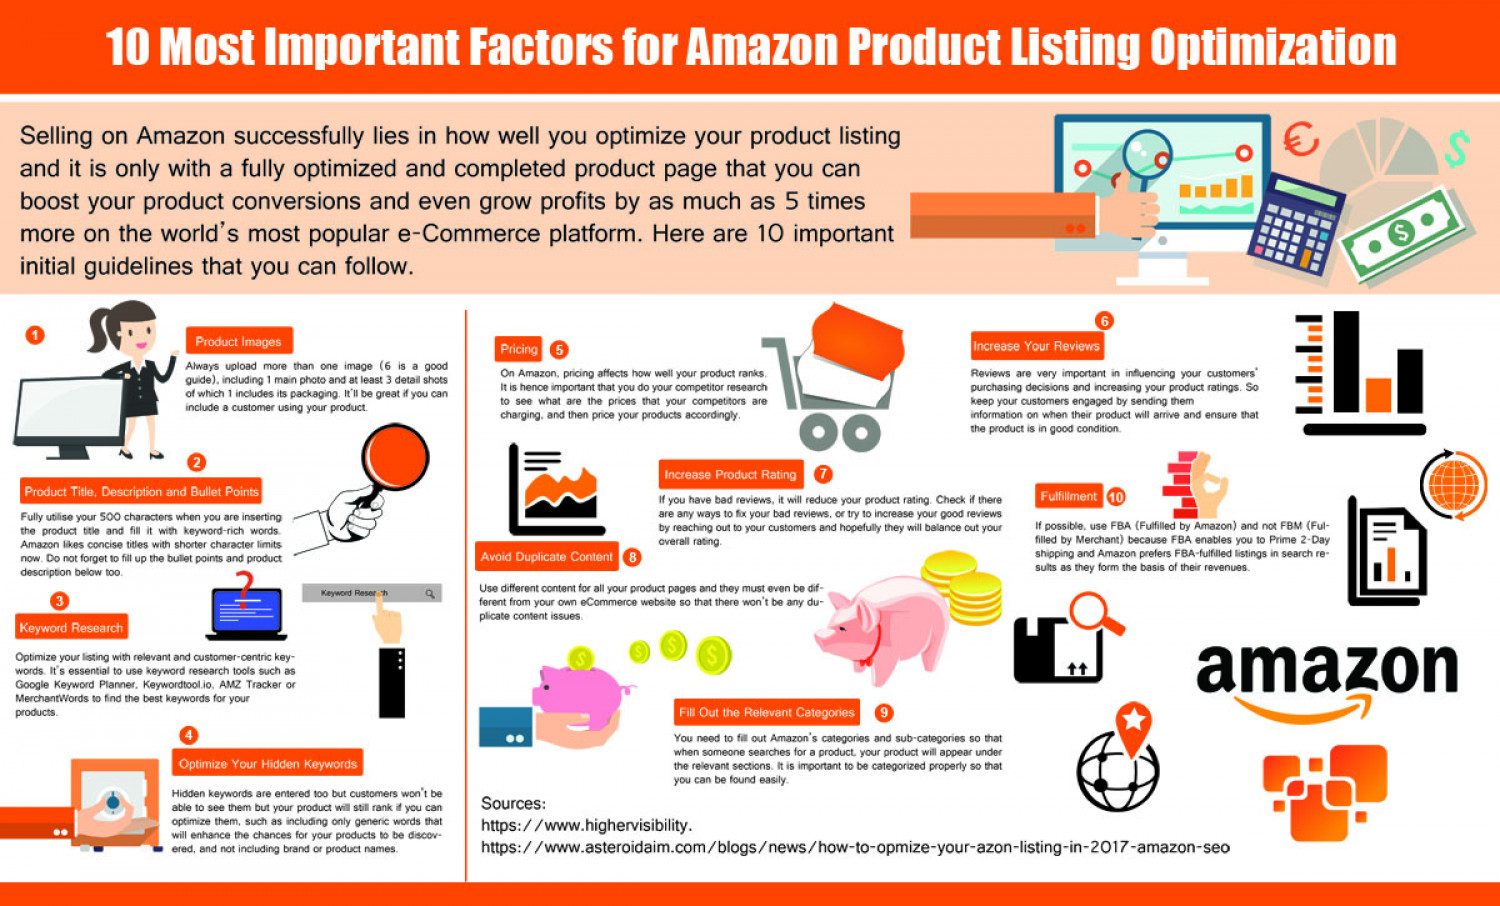 10 Most Important Factors for Amazon Product Listing Optimization  Infographic